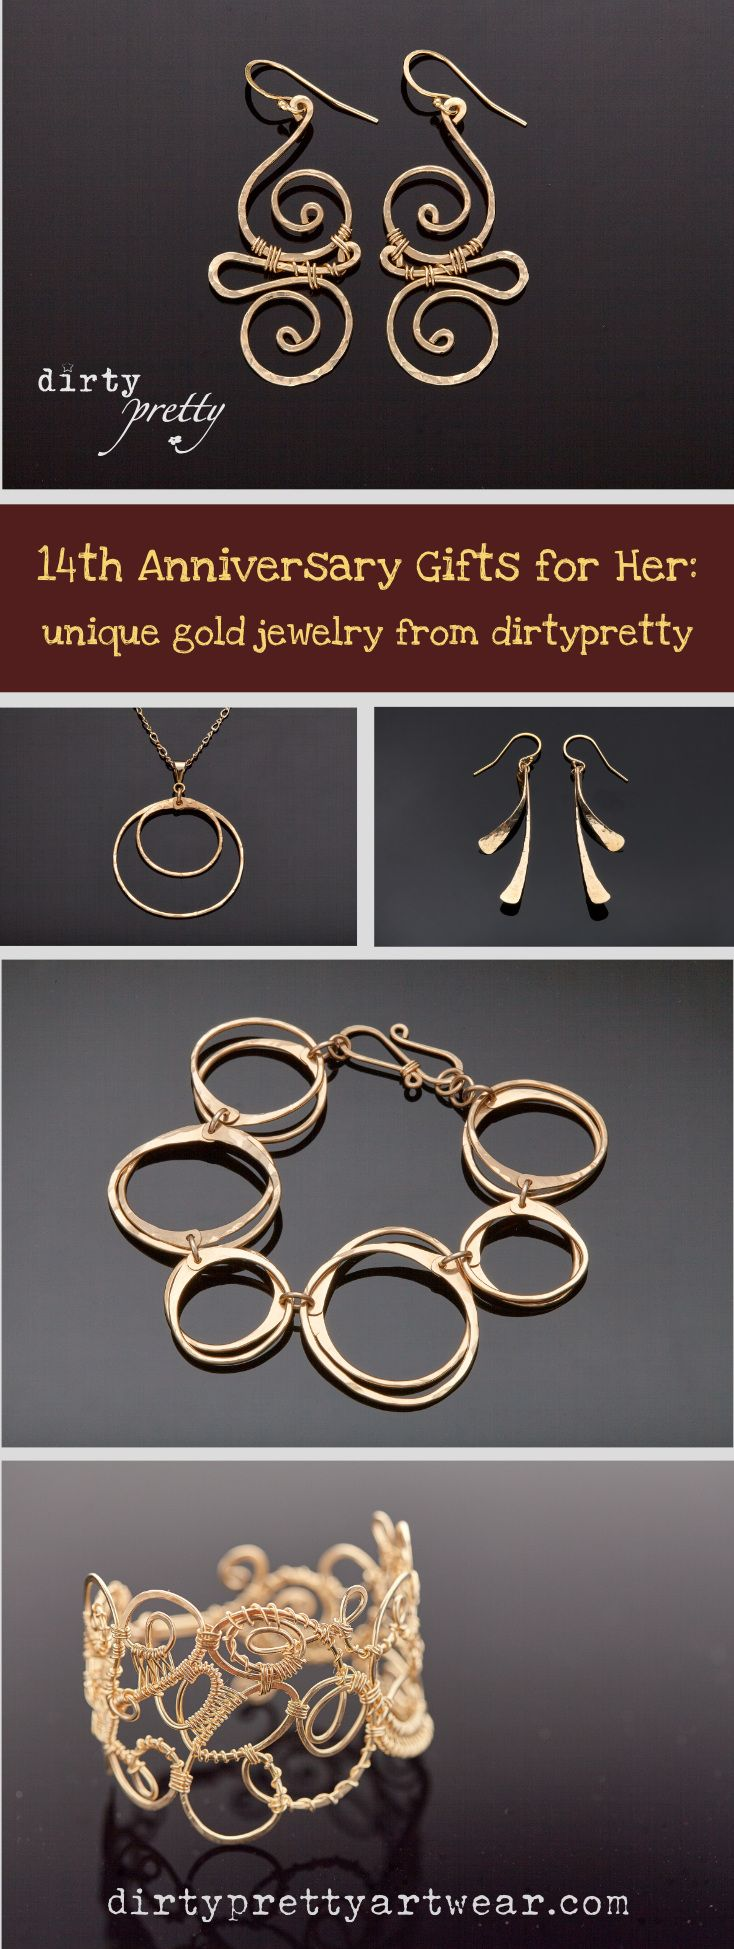 14th Anniversary Gifts for Her unique gold jewelry for